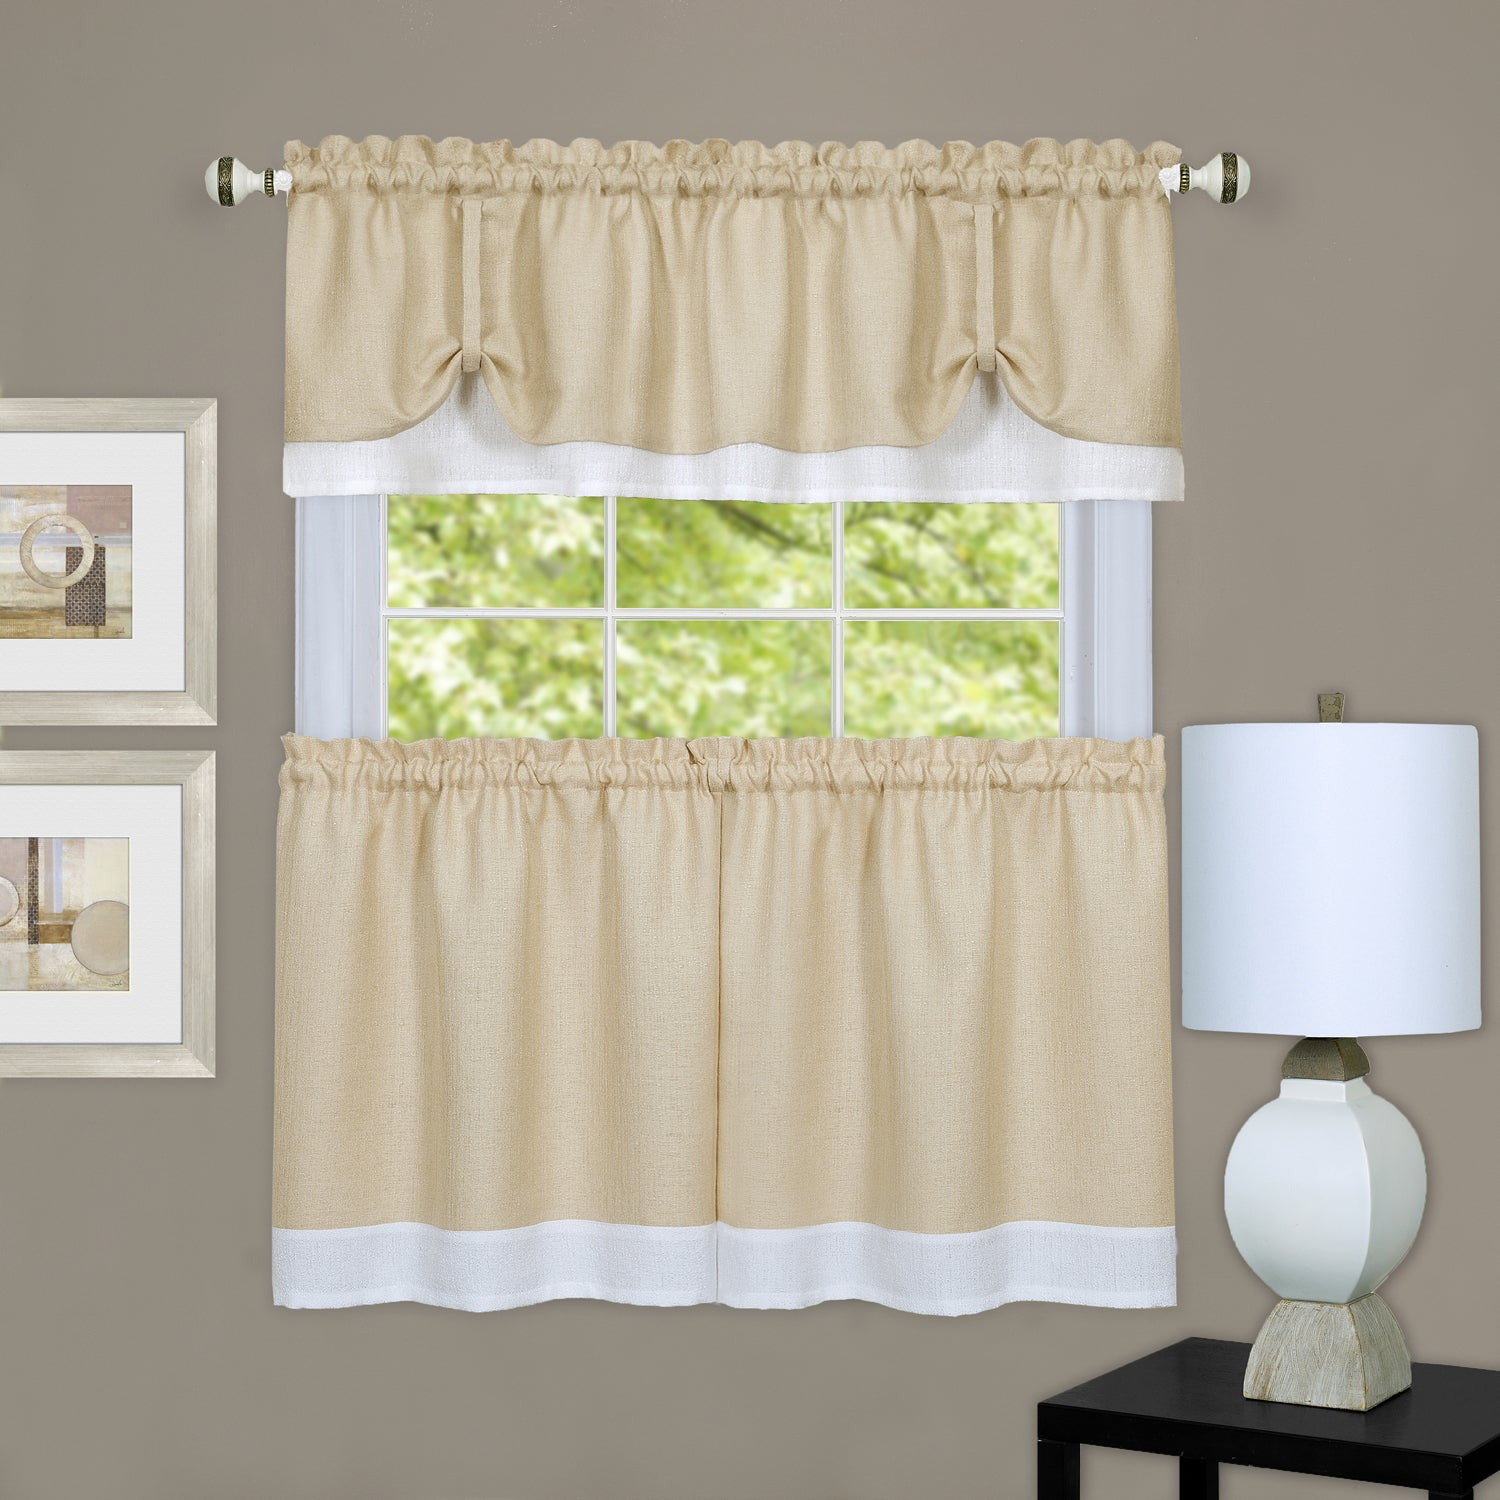 Double Layer Tie Up Tan/ White 3 Piece Tier And Valance Window Curtain Set Inside Spring Daisy Tiered Curtain 3 Piece Sets (View 8 of 20)